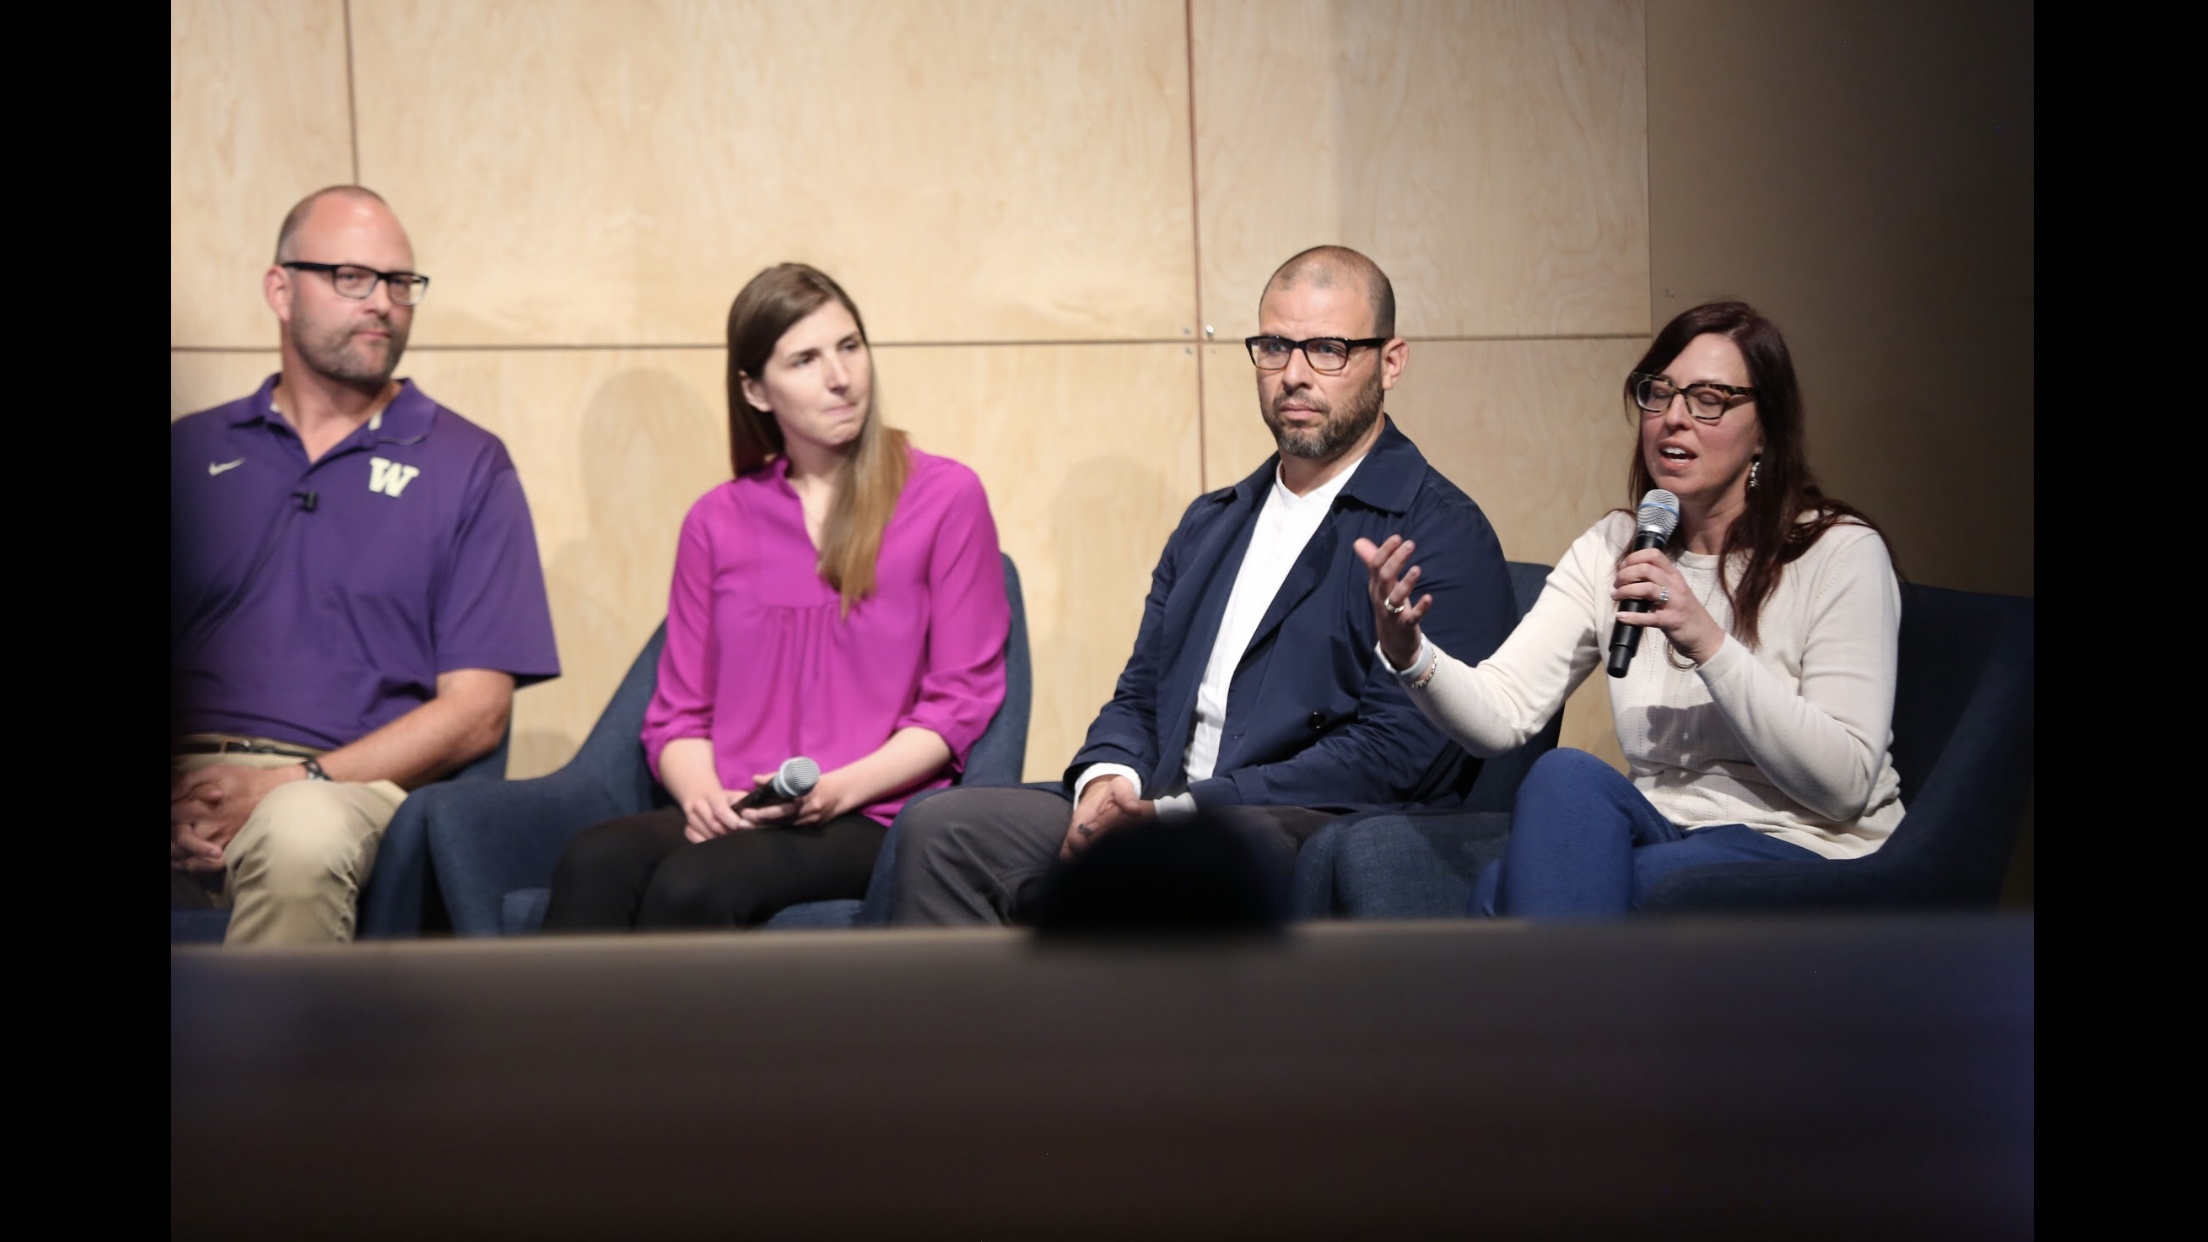 A panel of four presenters on a stage, from left to right is Jacob Wobbrock, Kat Steele, Oscar Murillo, and Heather Feldner, who is speaking into the microphone